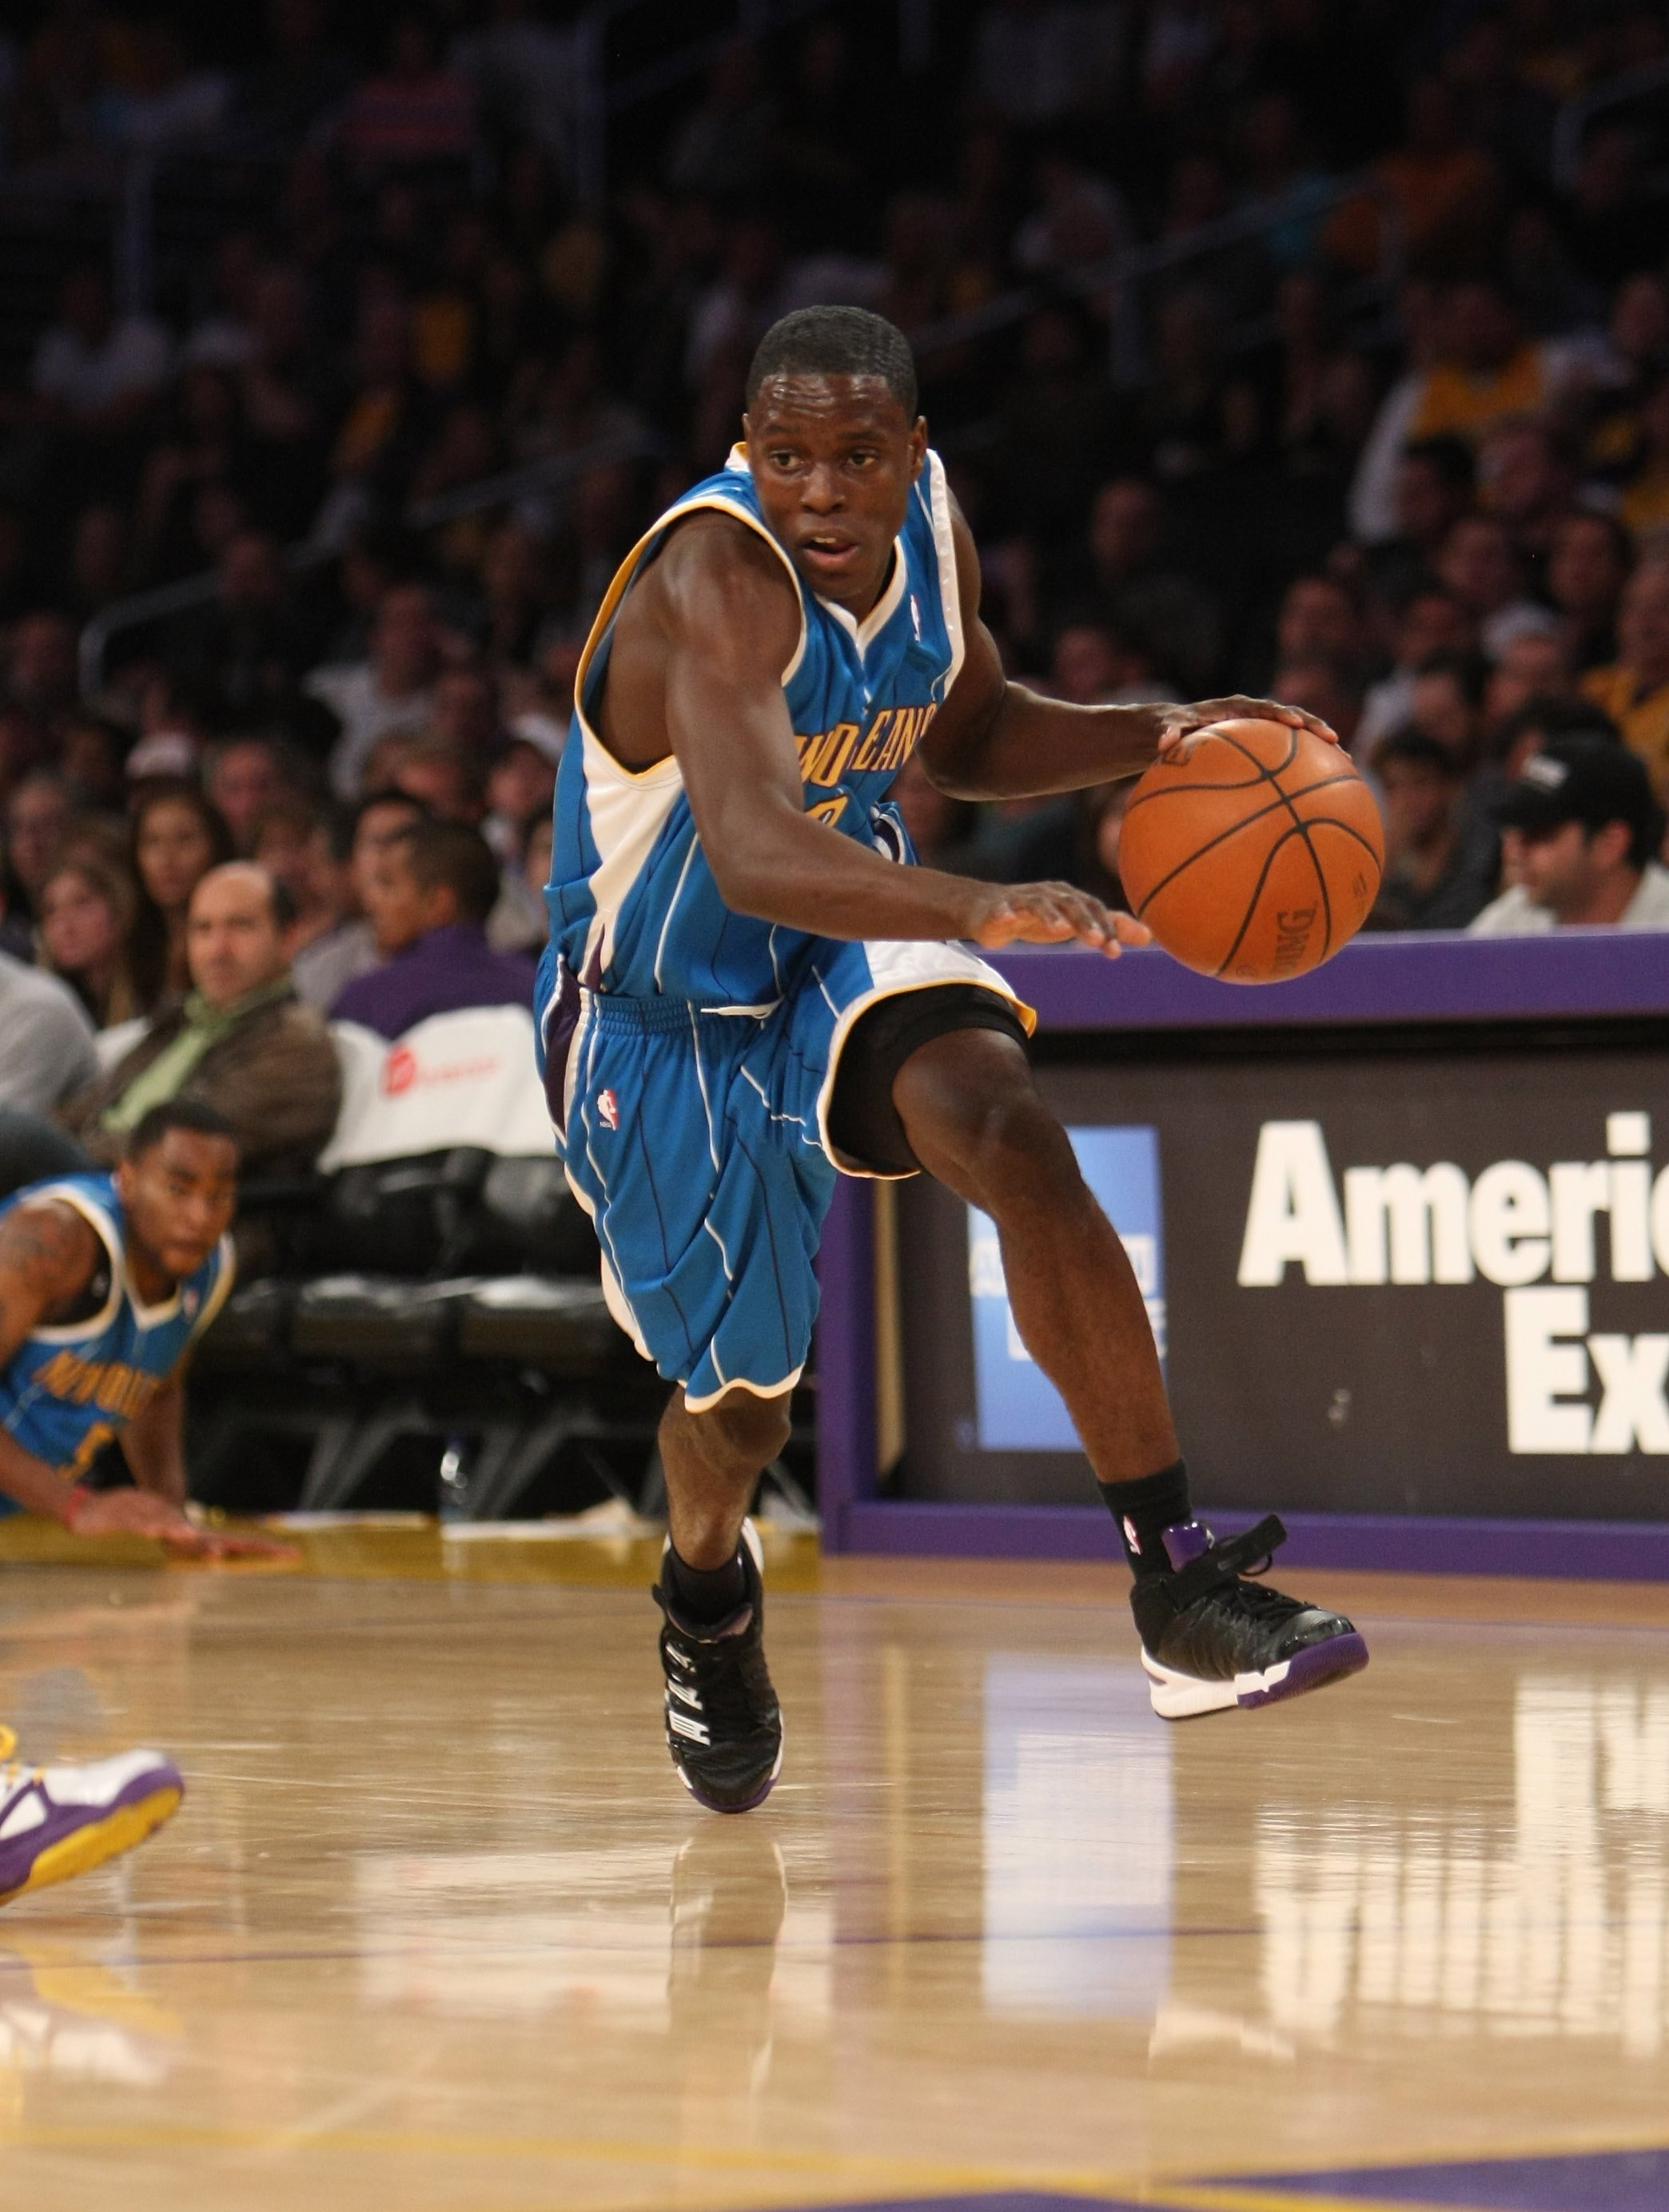 LOS ANGELES, CA - NOVEMBER 08:  Darren Collison #2 of the New Orleans Hornets drives against the Los Angeles Lakers on November 8, 2009 at Staples Center in Los Angeles, California. The Lakers won 104-88.  NOTE TO USER: User expressly acknowledges and agr